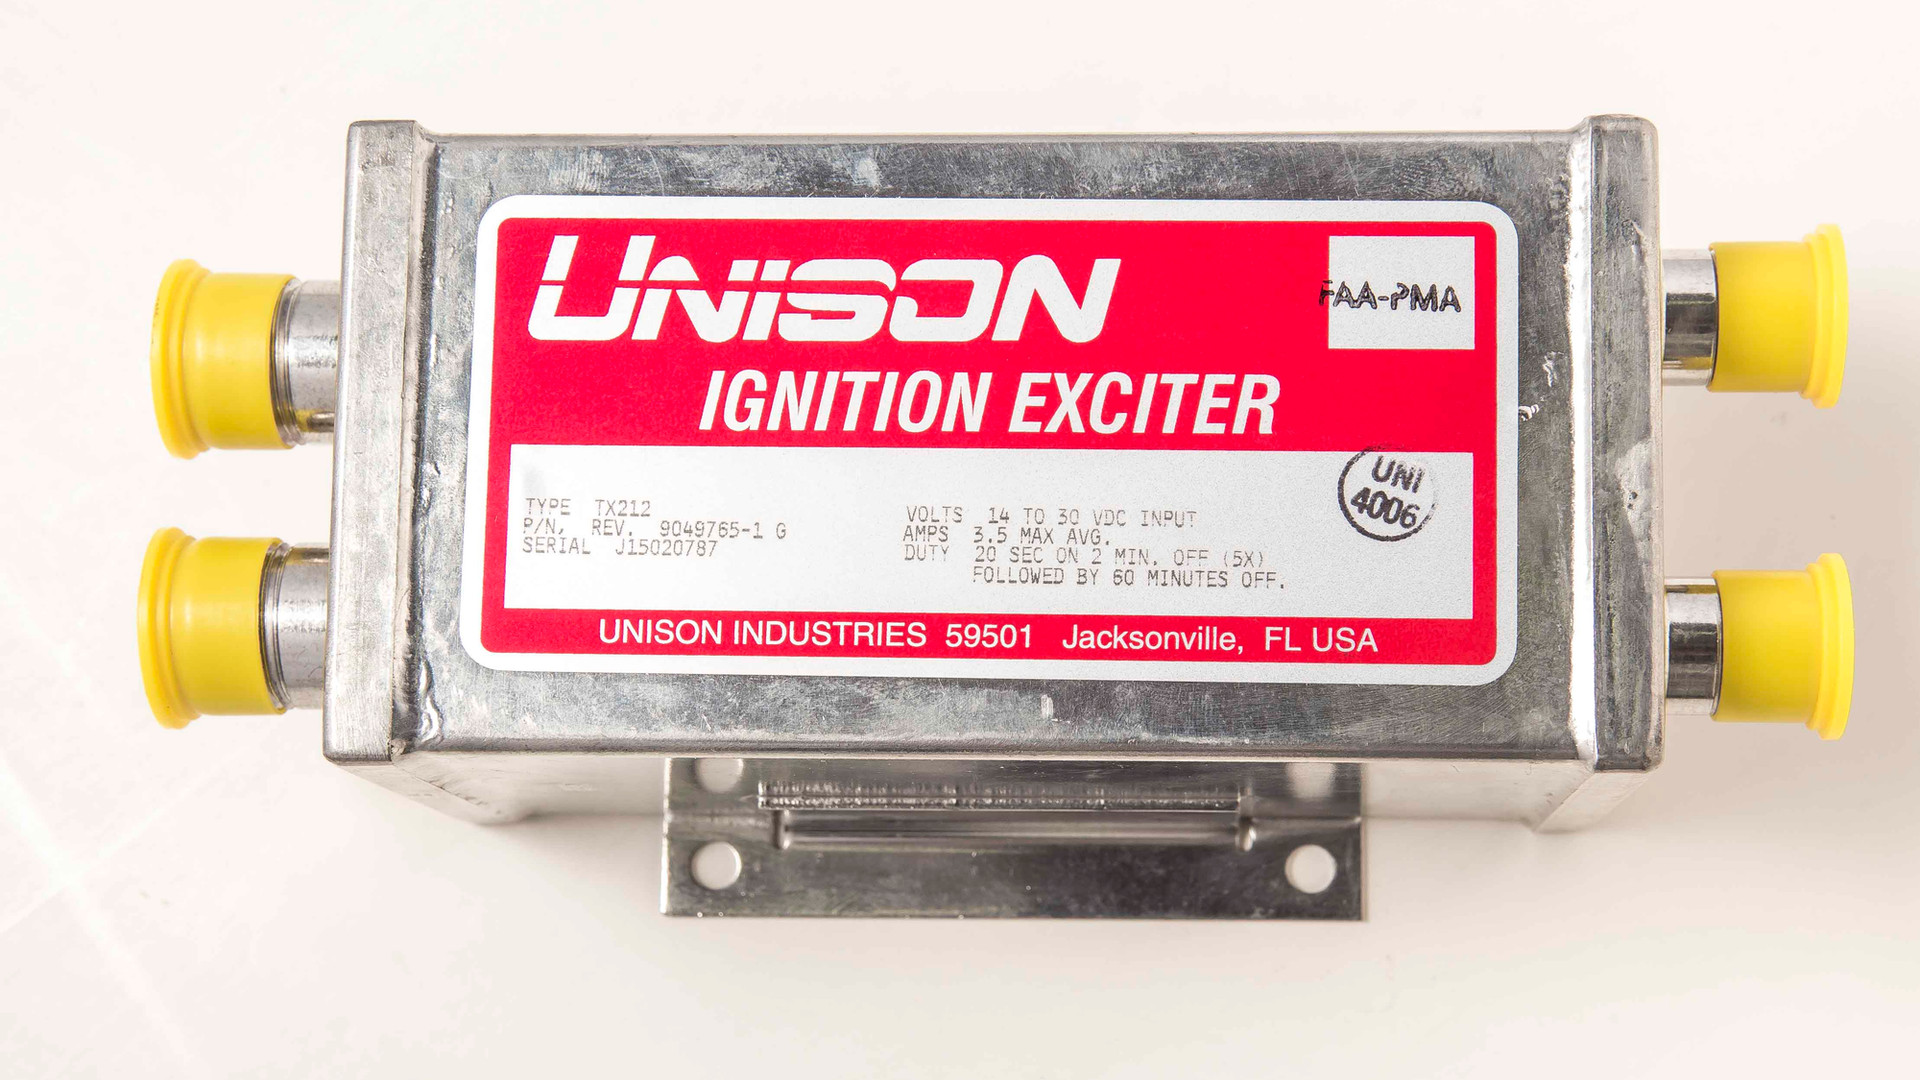 Ignition_Exciter_Box.JPG